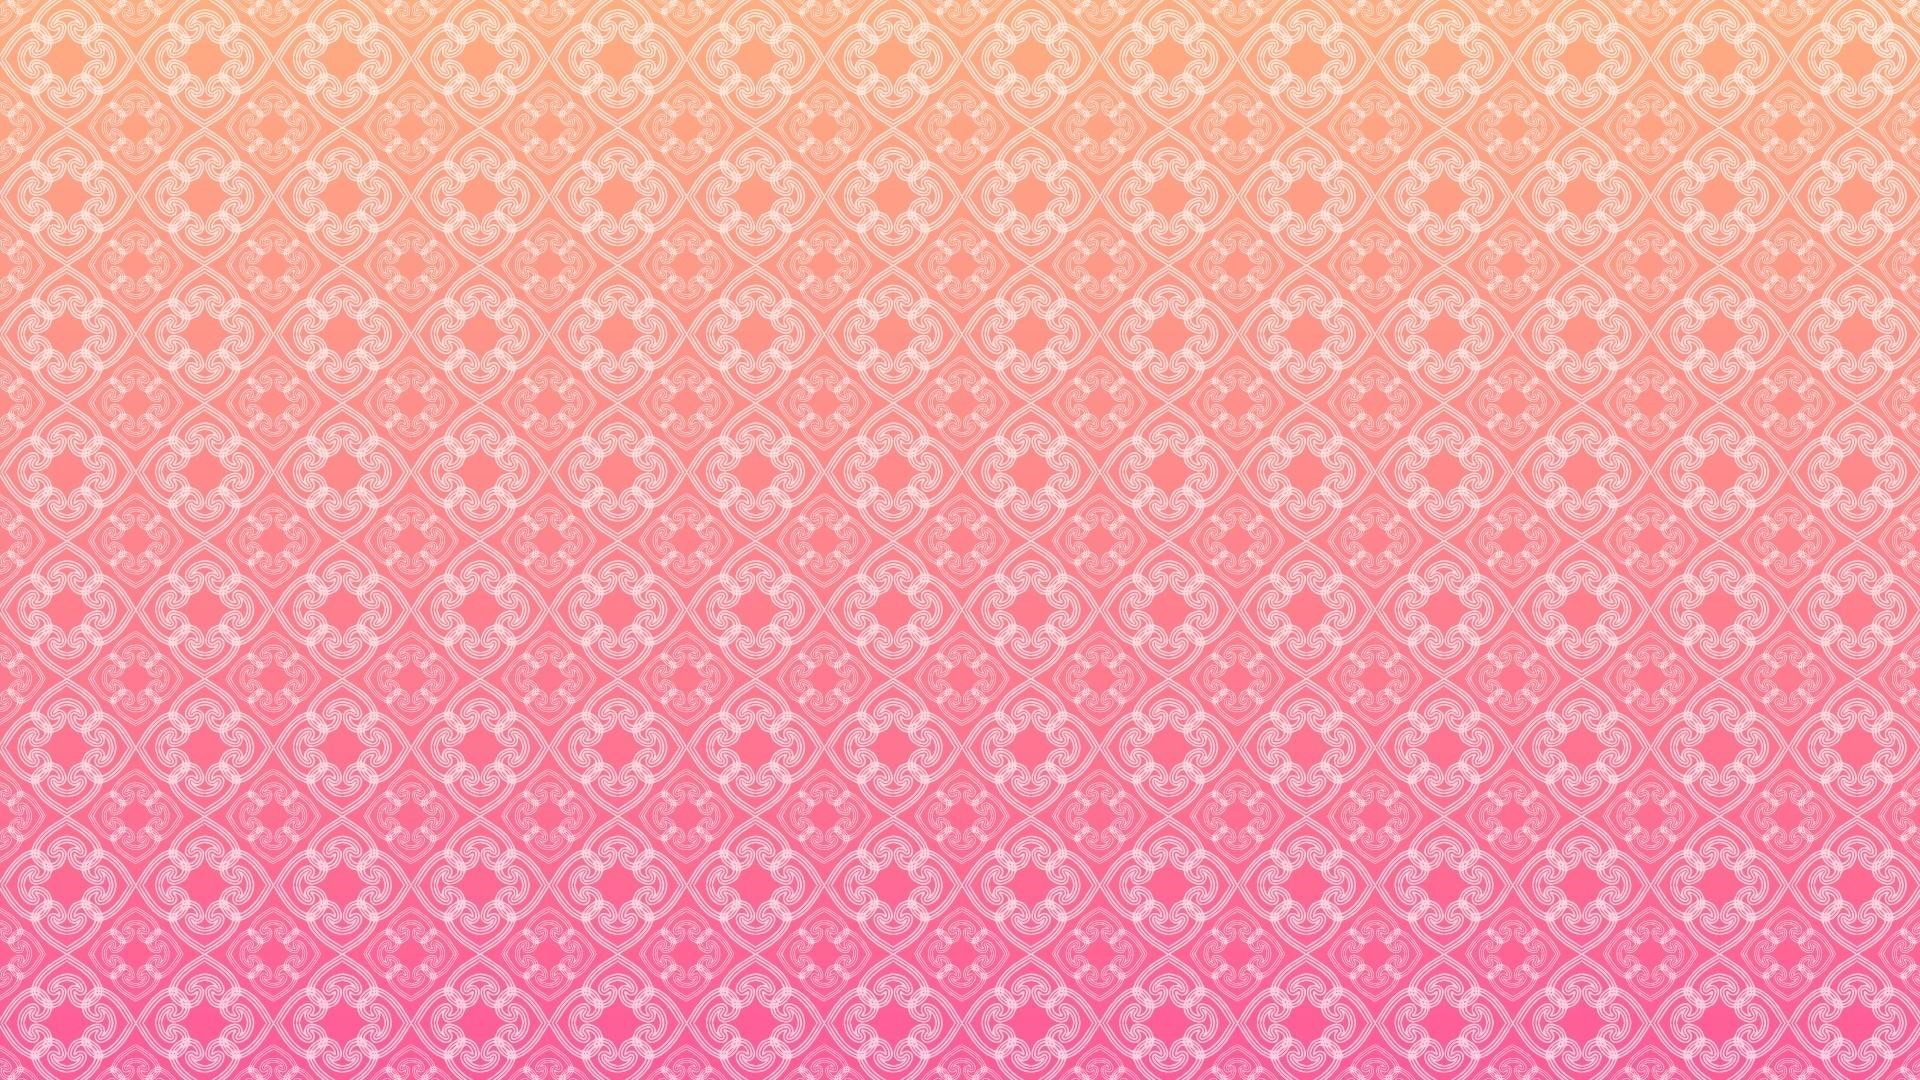 Pink Lace Wallpaper 41 Images